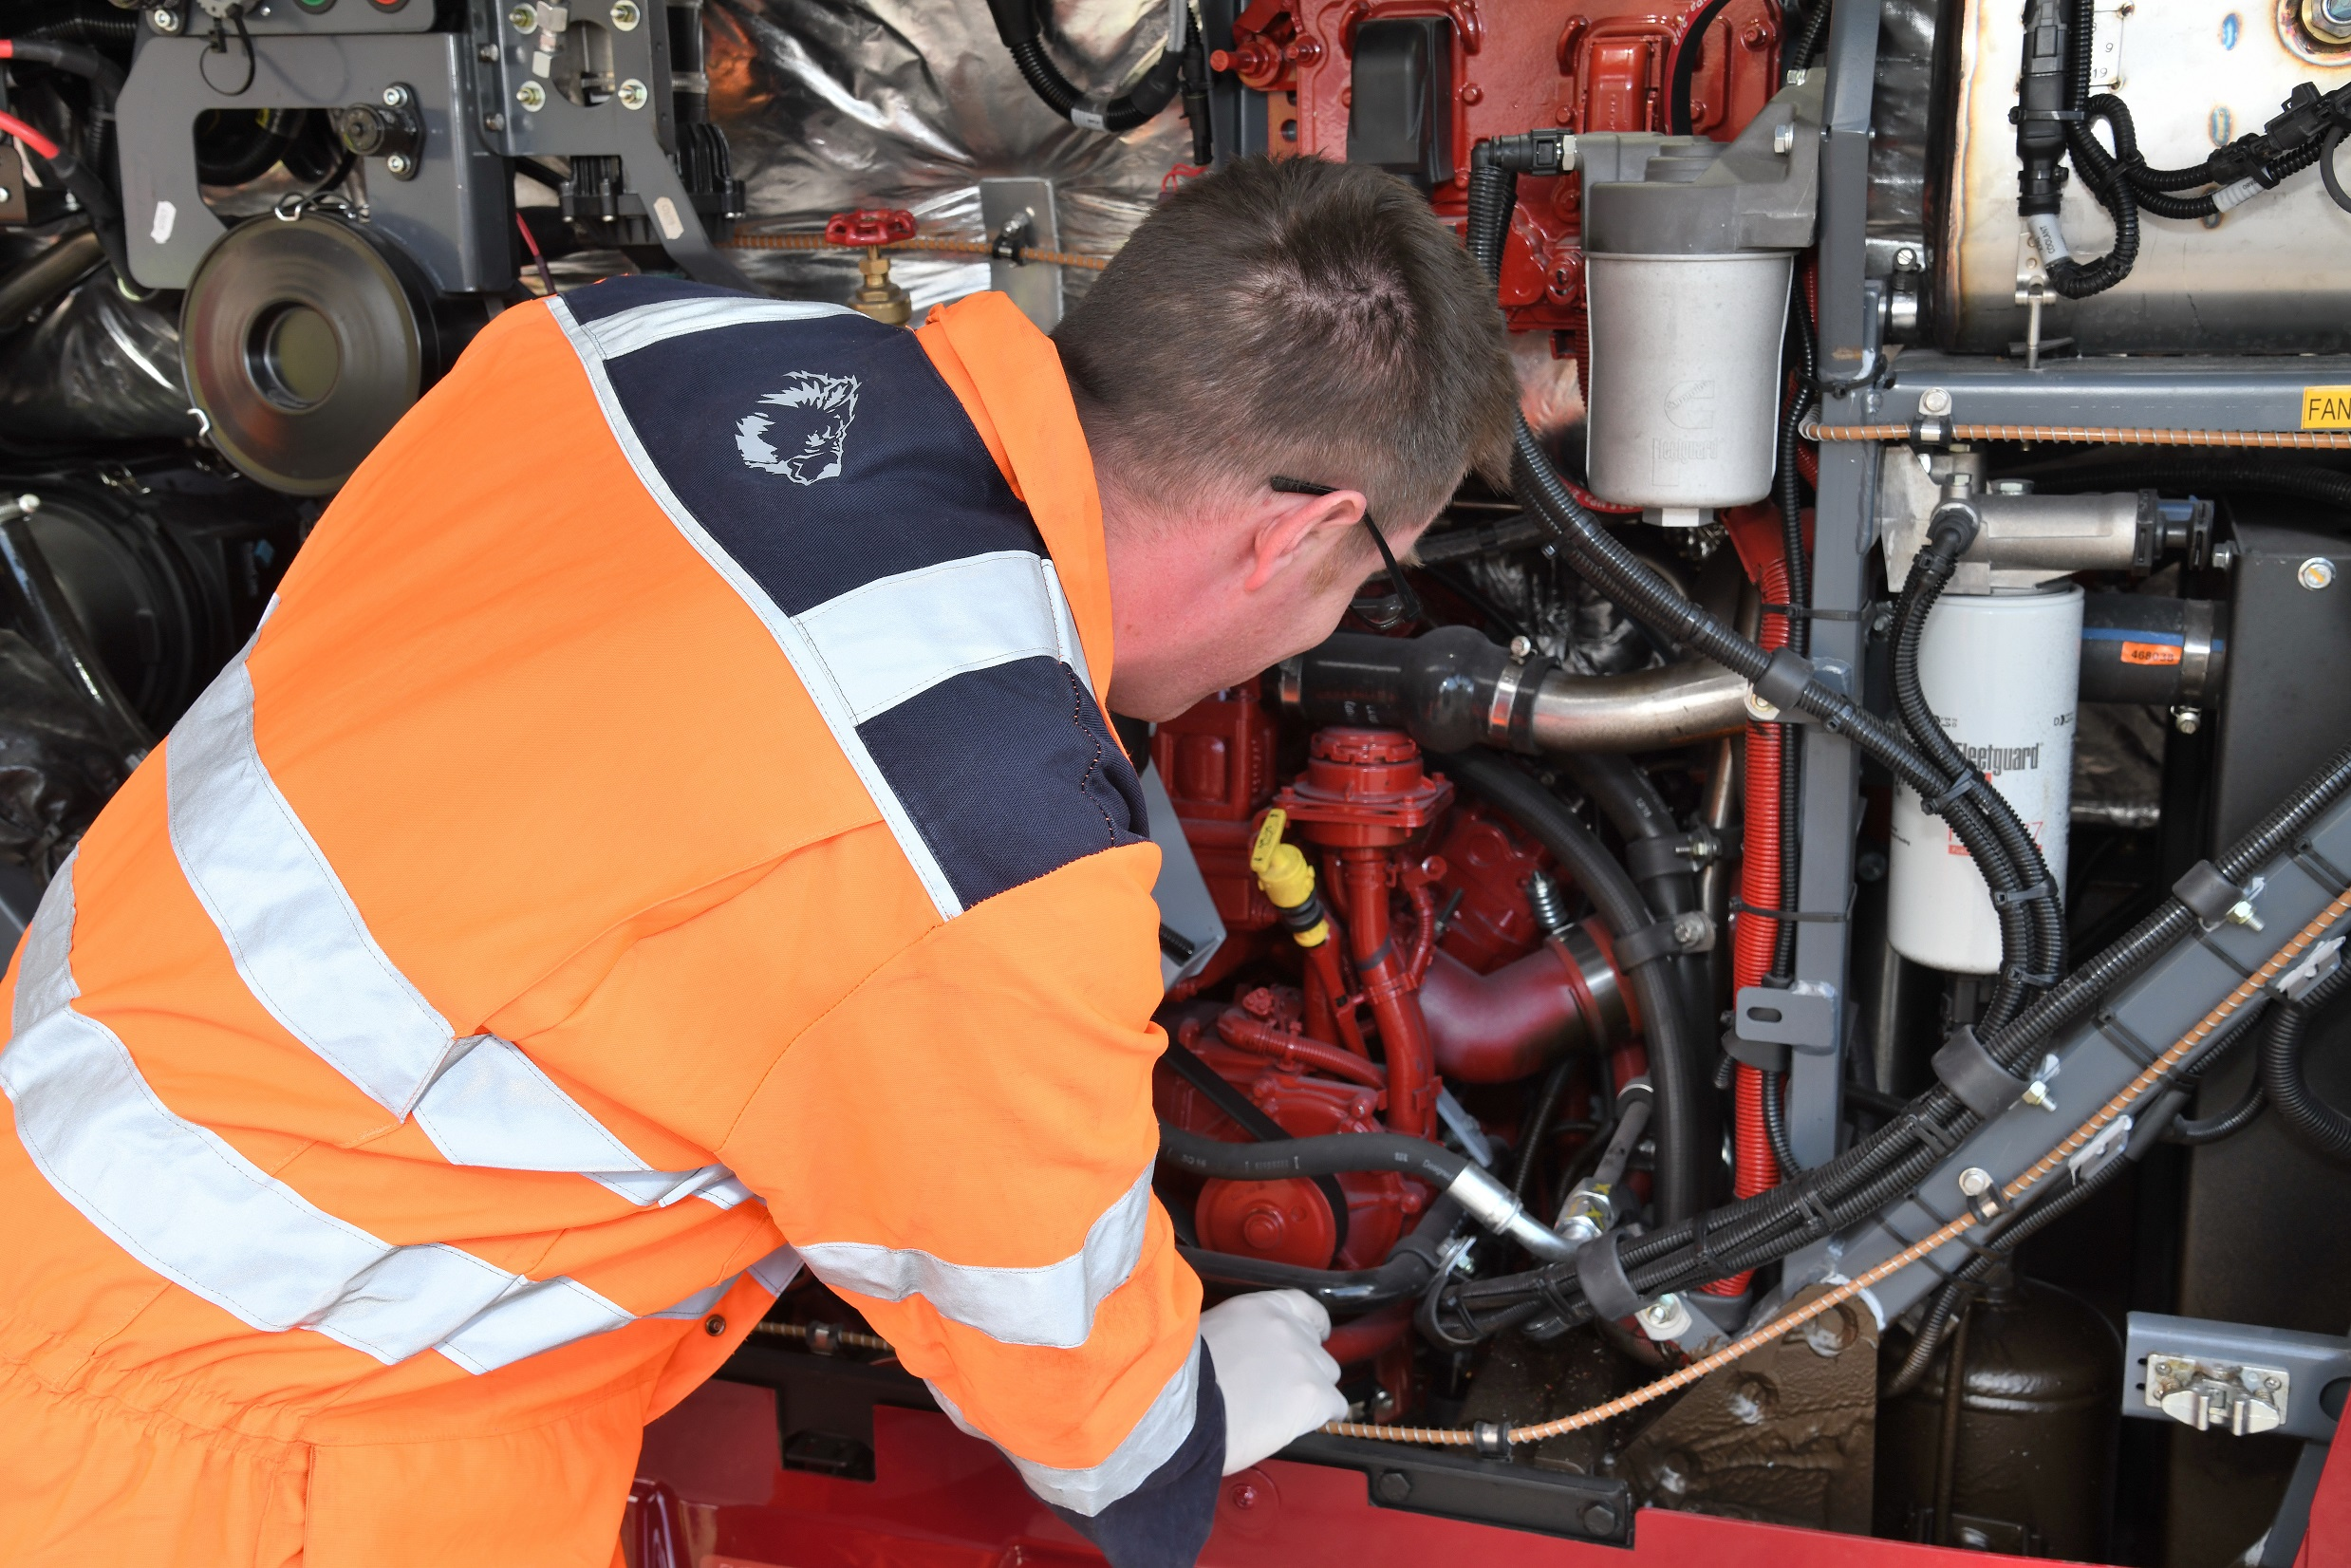 An engineer in orange overalls inspects a bus engine